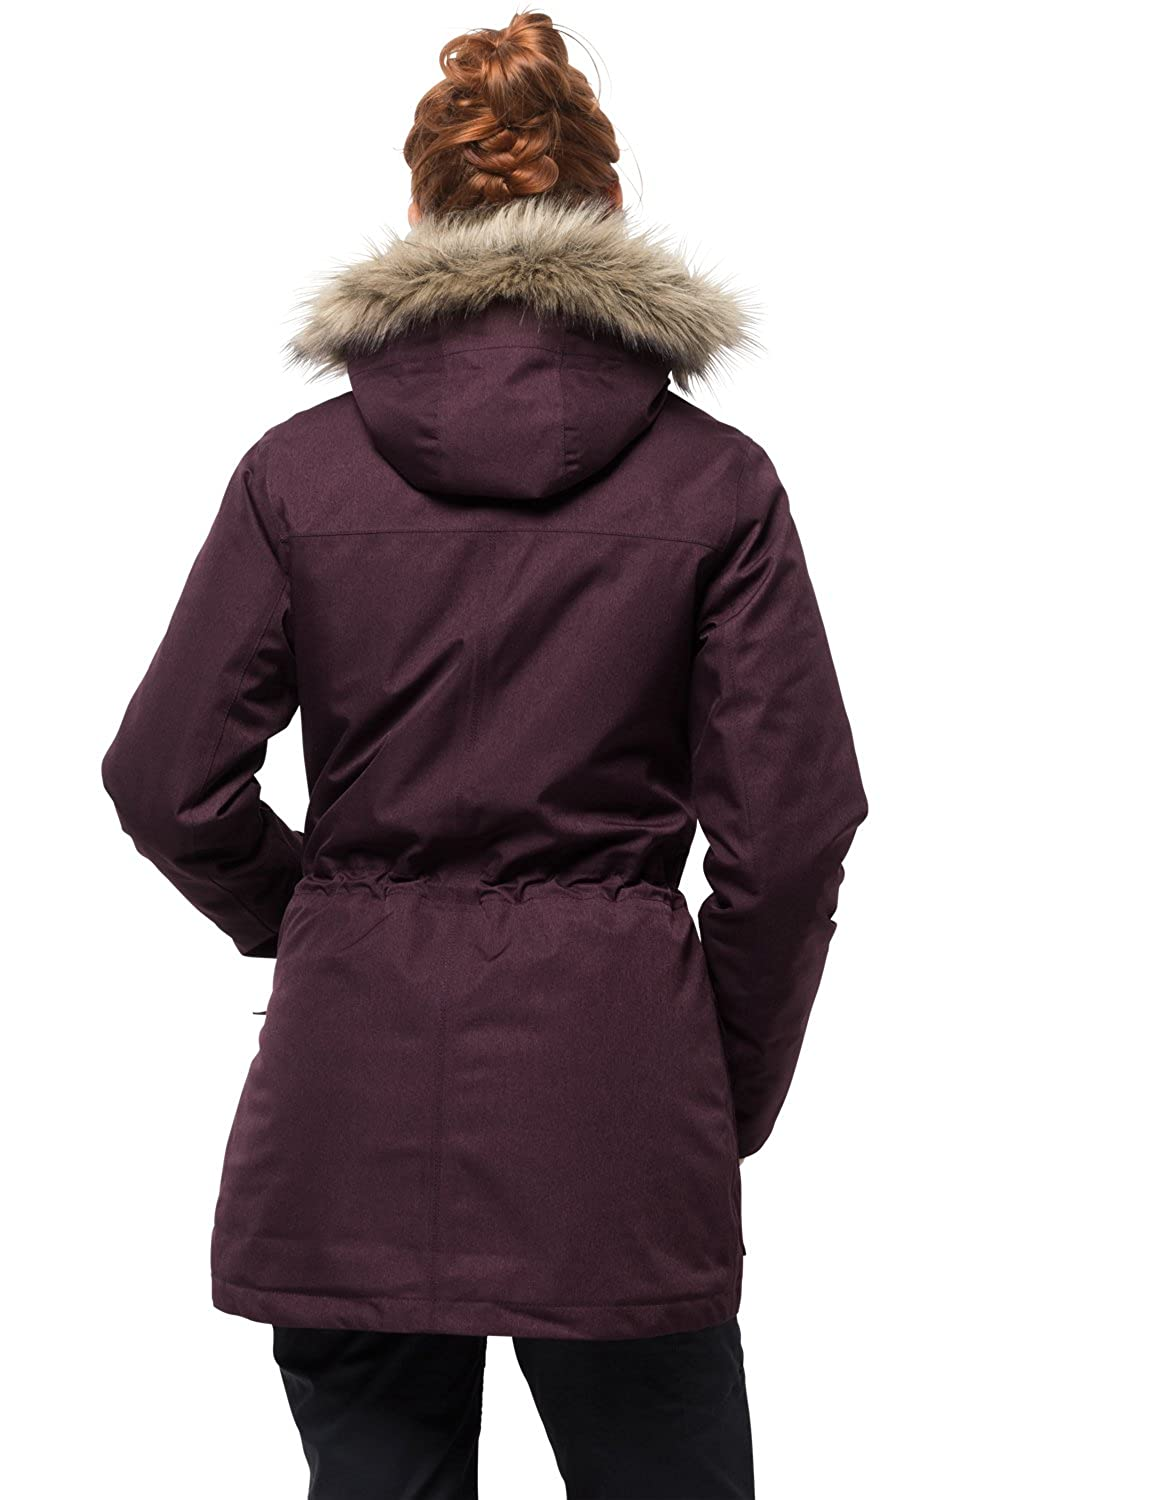 38ee9437115 Amazon.com: Jack Wolfskin Women's Coastal Range Parka Waterproof Insulated  Jacket: Clothing